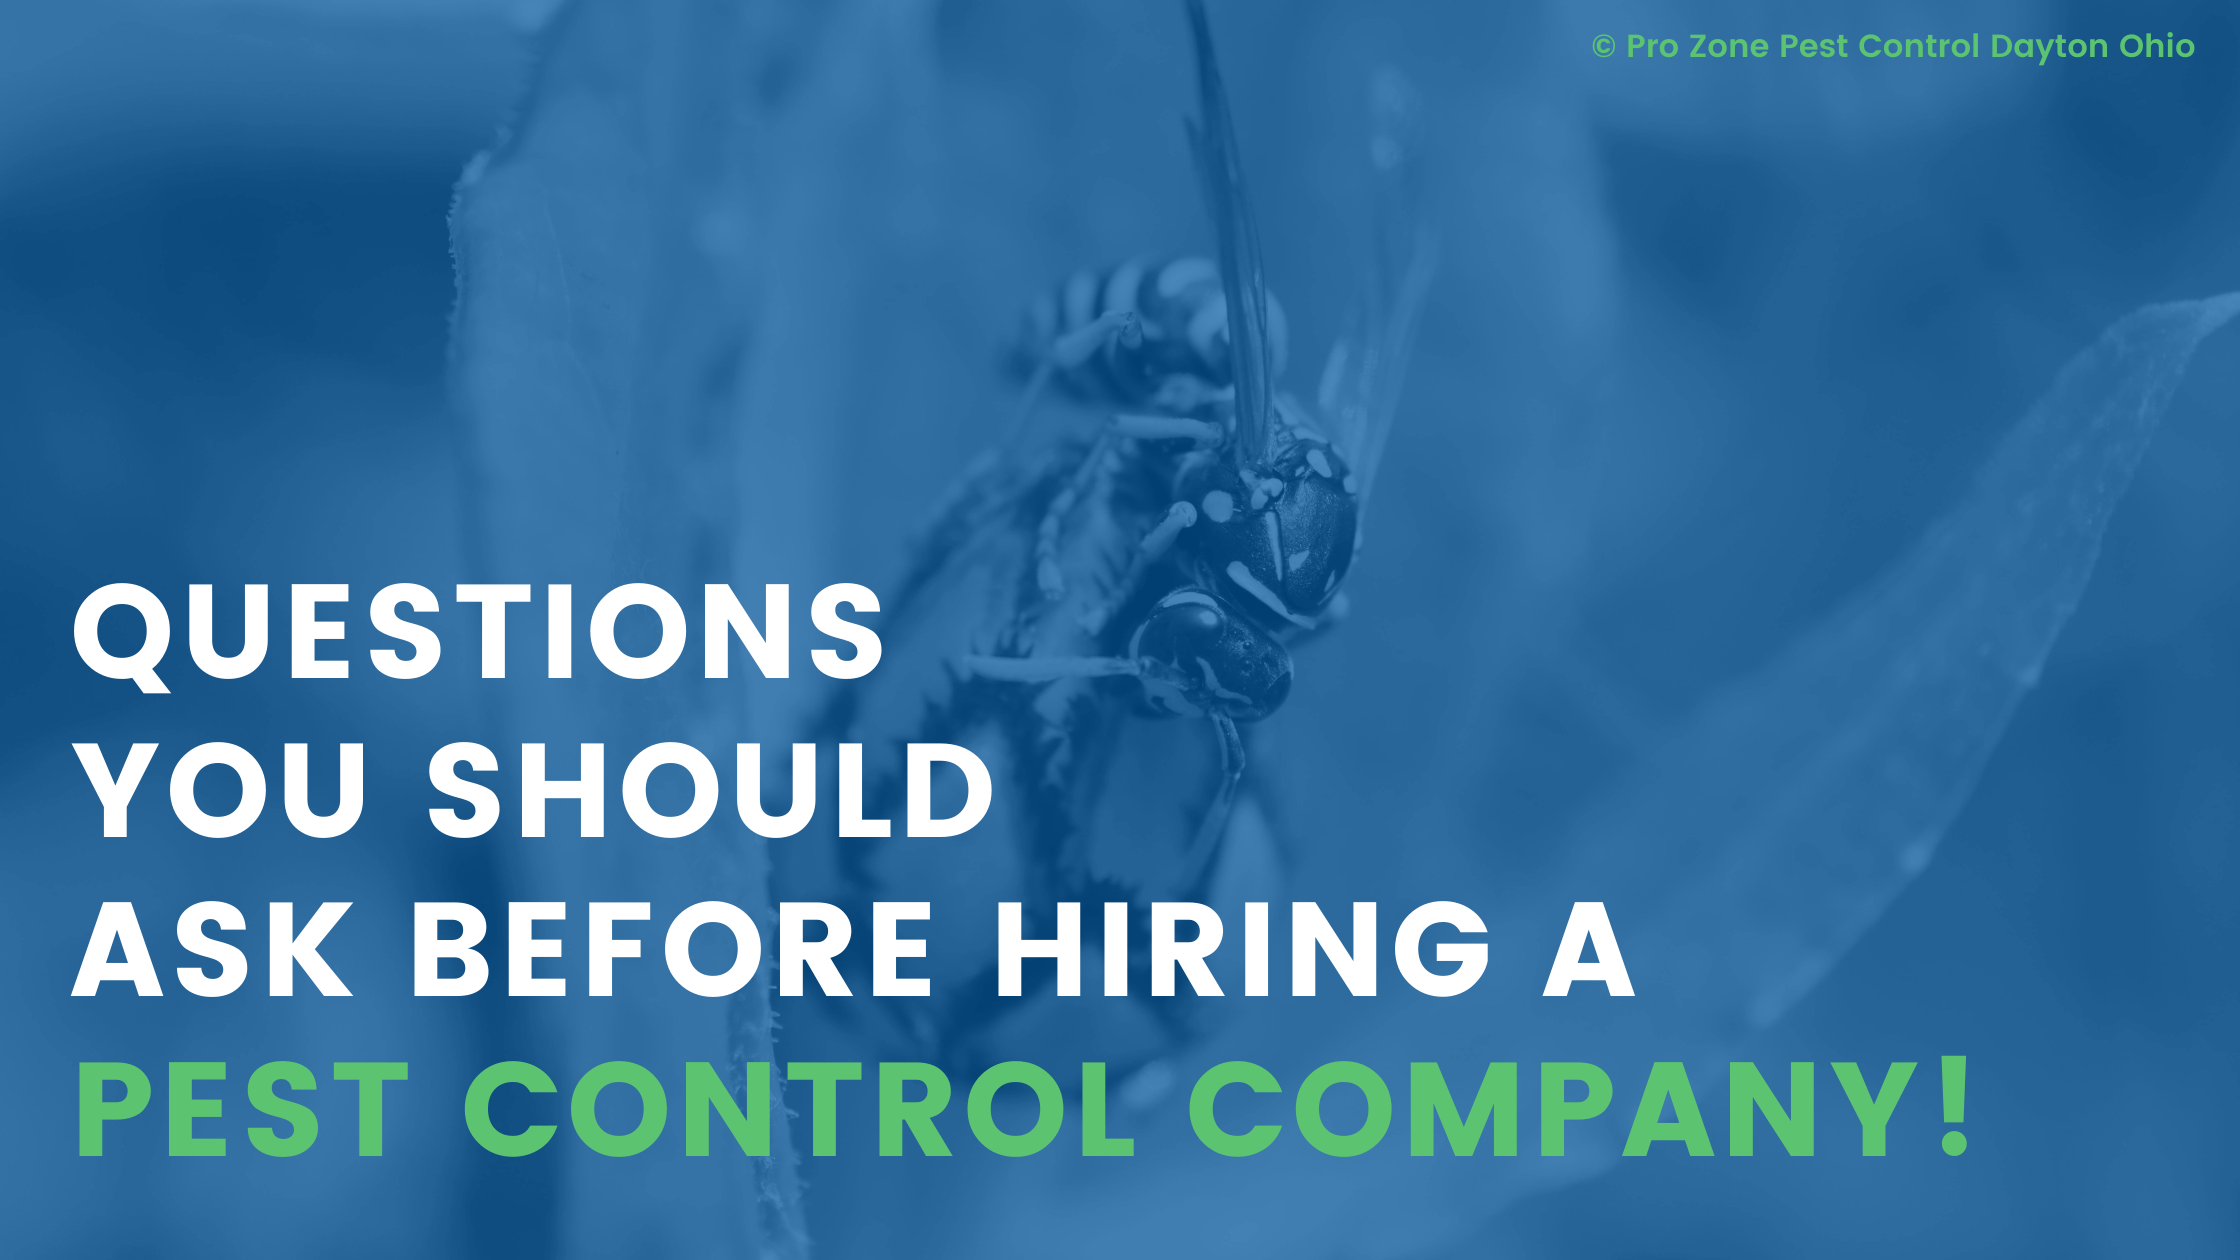 Questions To Ask Before Hiring a Pest Control Company in Dayton OH